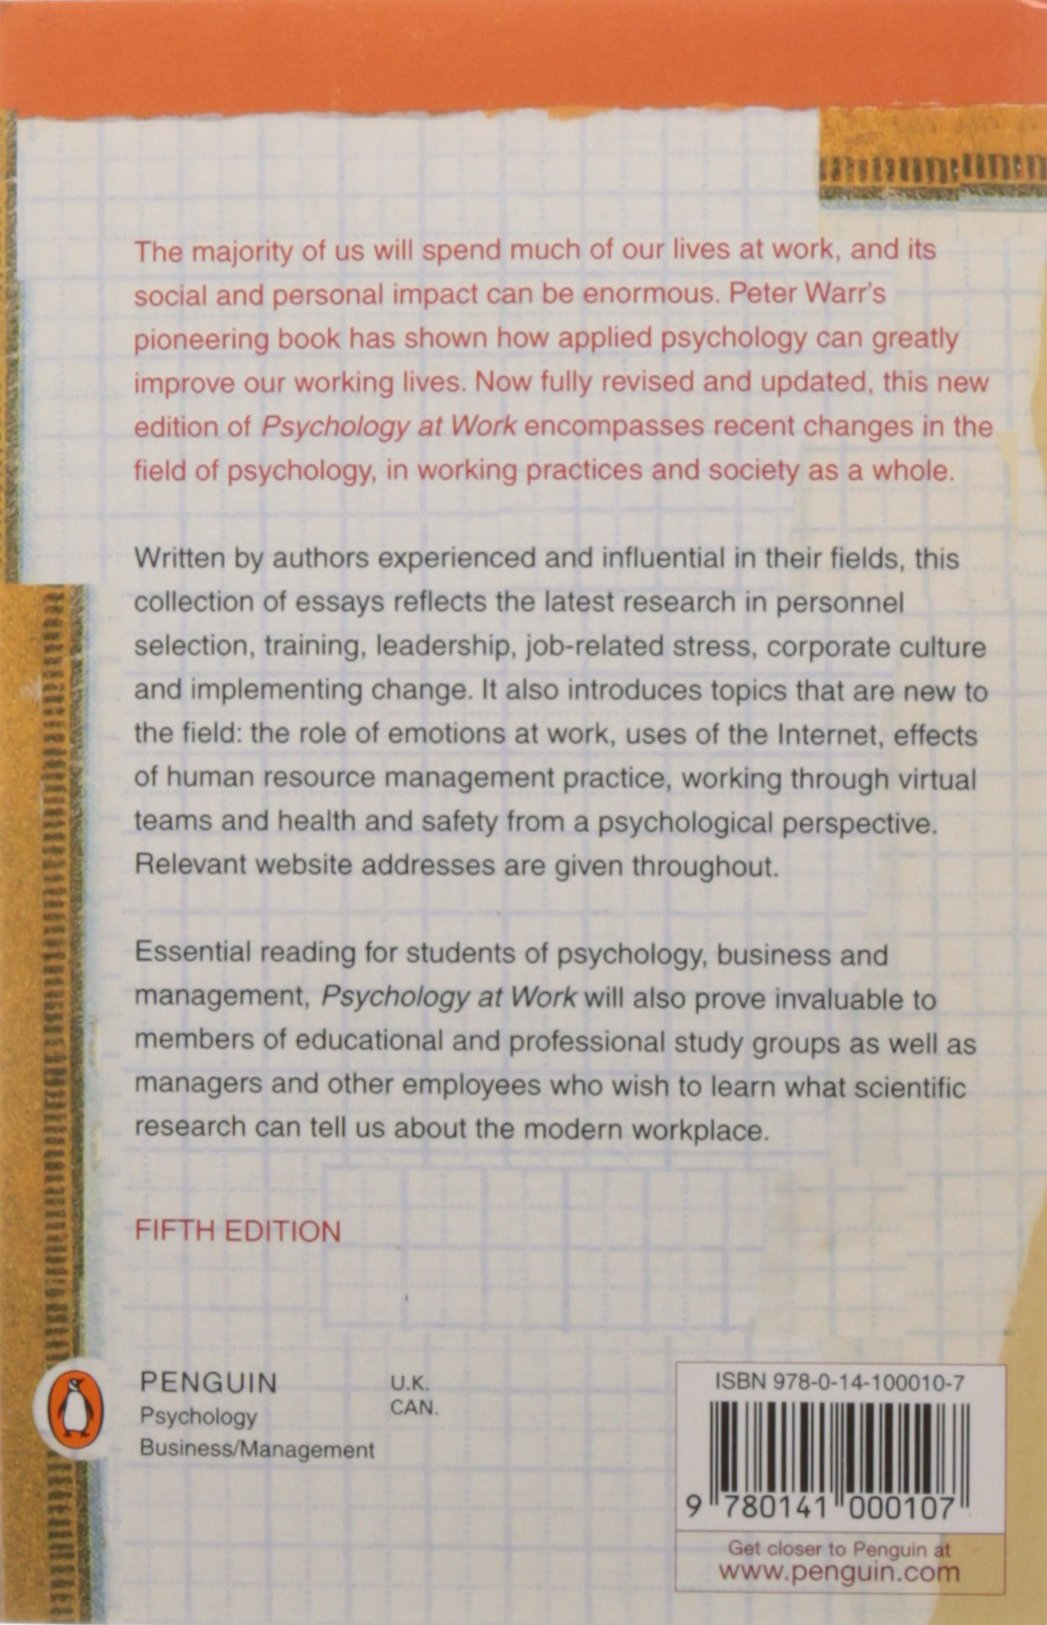 psychology at work co uk peter warr 9780141000107 books